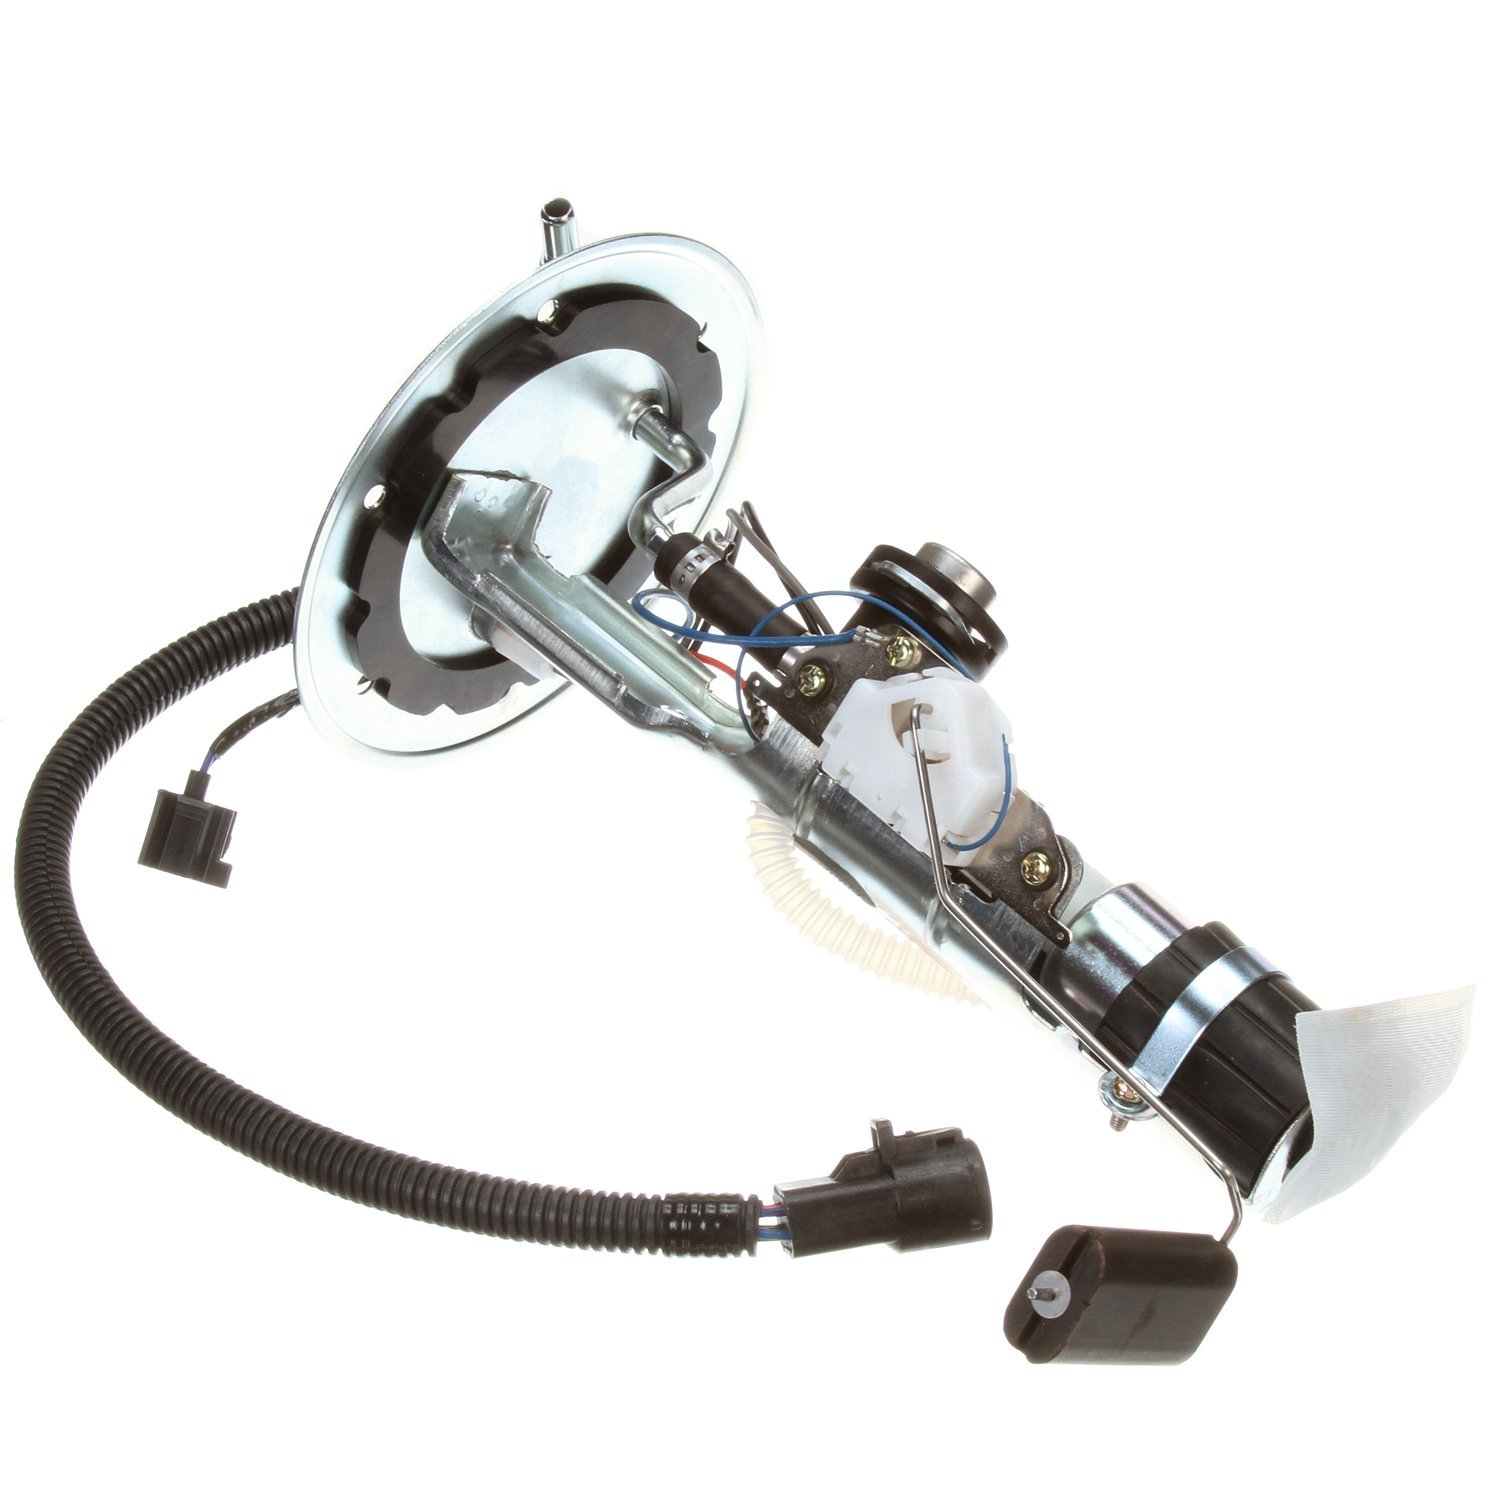 Delphi Hp10135 Fuel Pump And Hanger Assembly With 2001 Explorer Sport Trac Filter Sending Unit Automotive